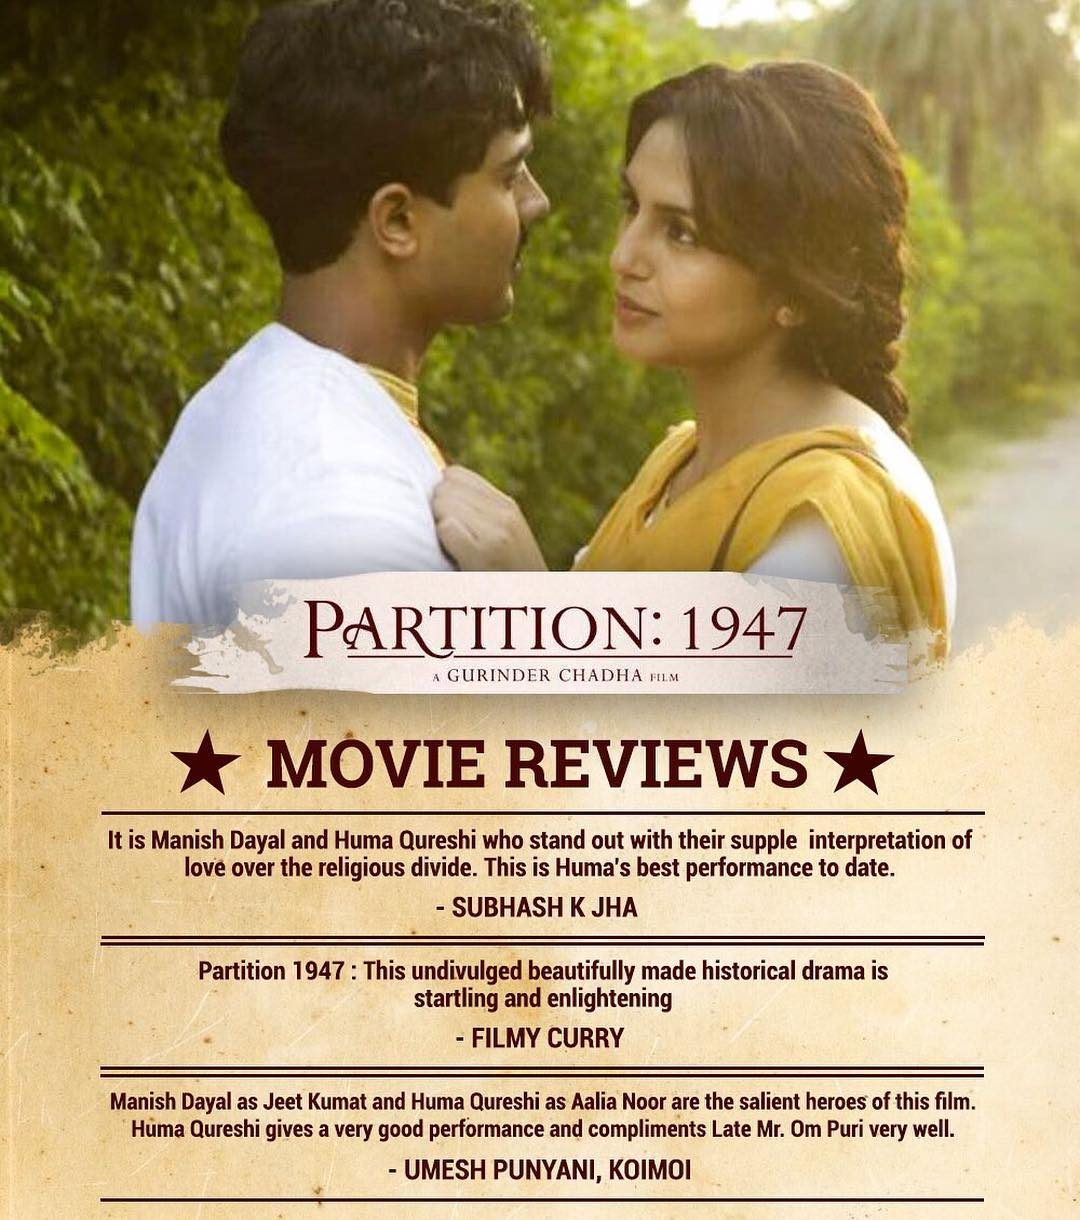 Partition 1947 movie review: Partition 1947 Rating & Public Talk